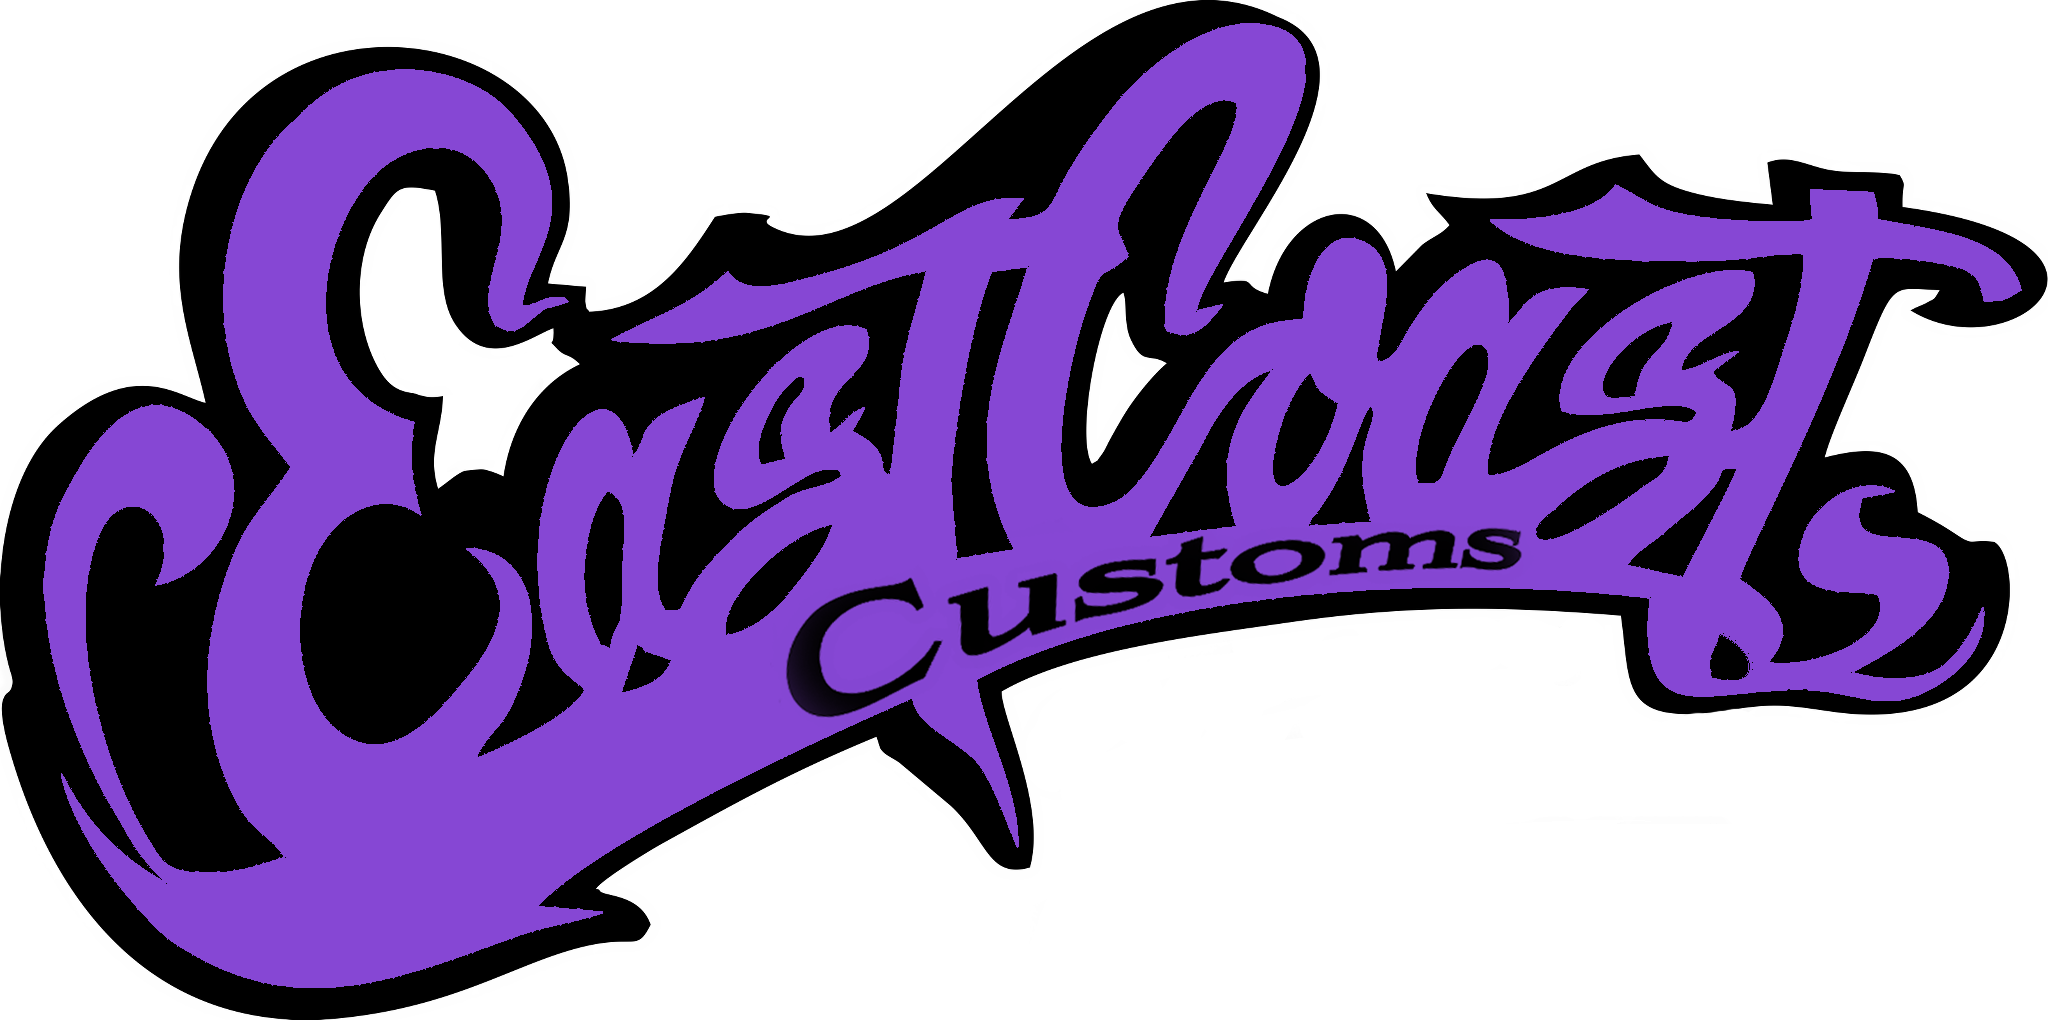 east-coast-customs-purple-clear-background.png